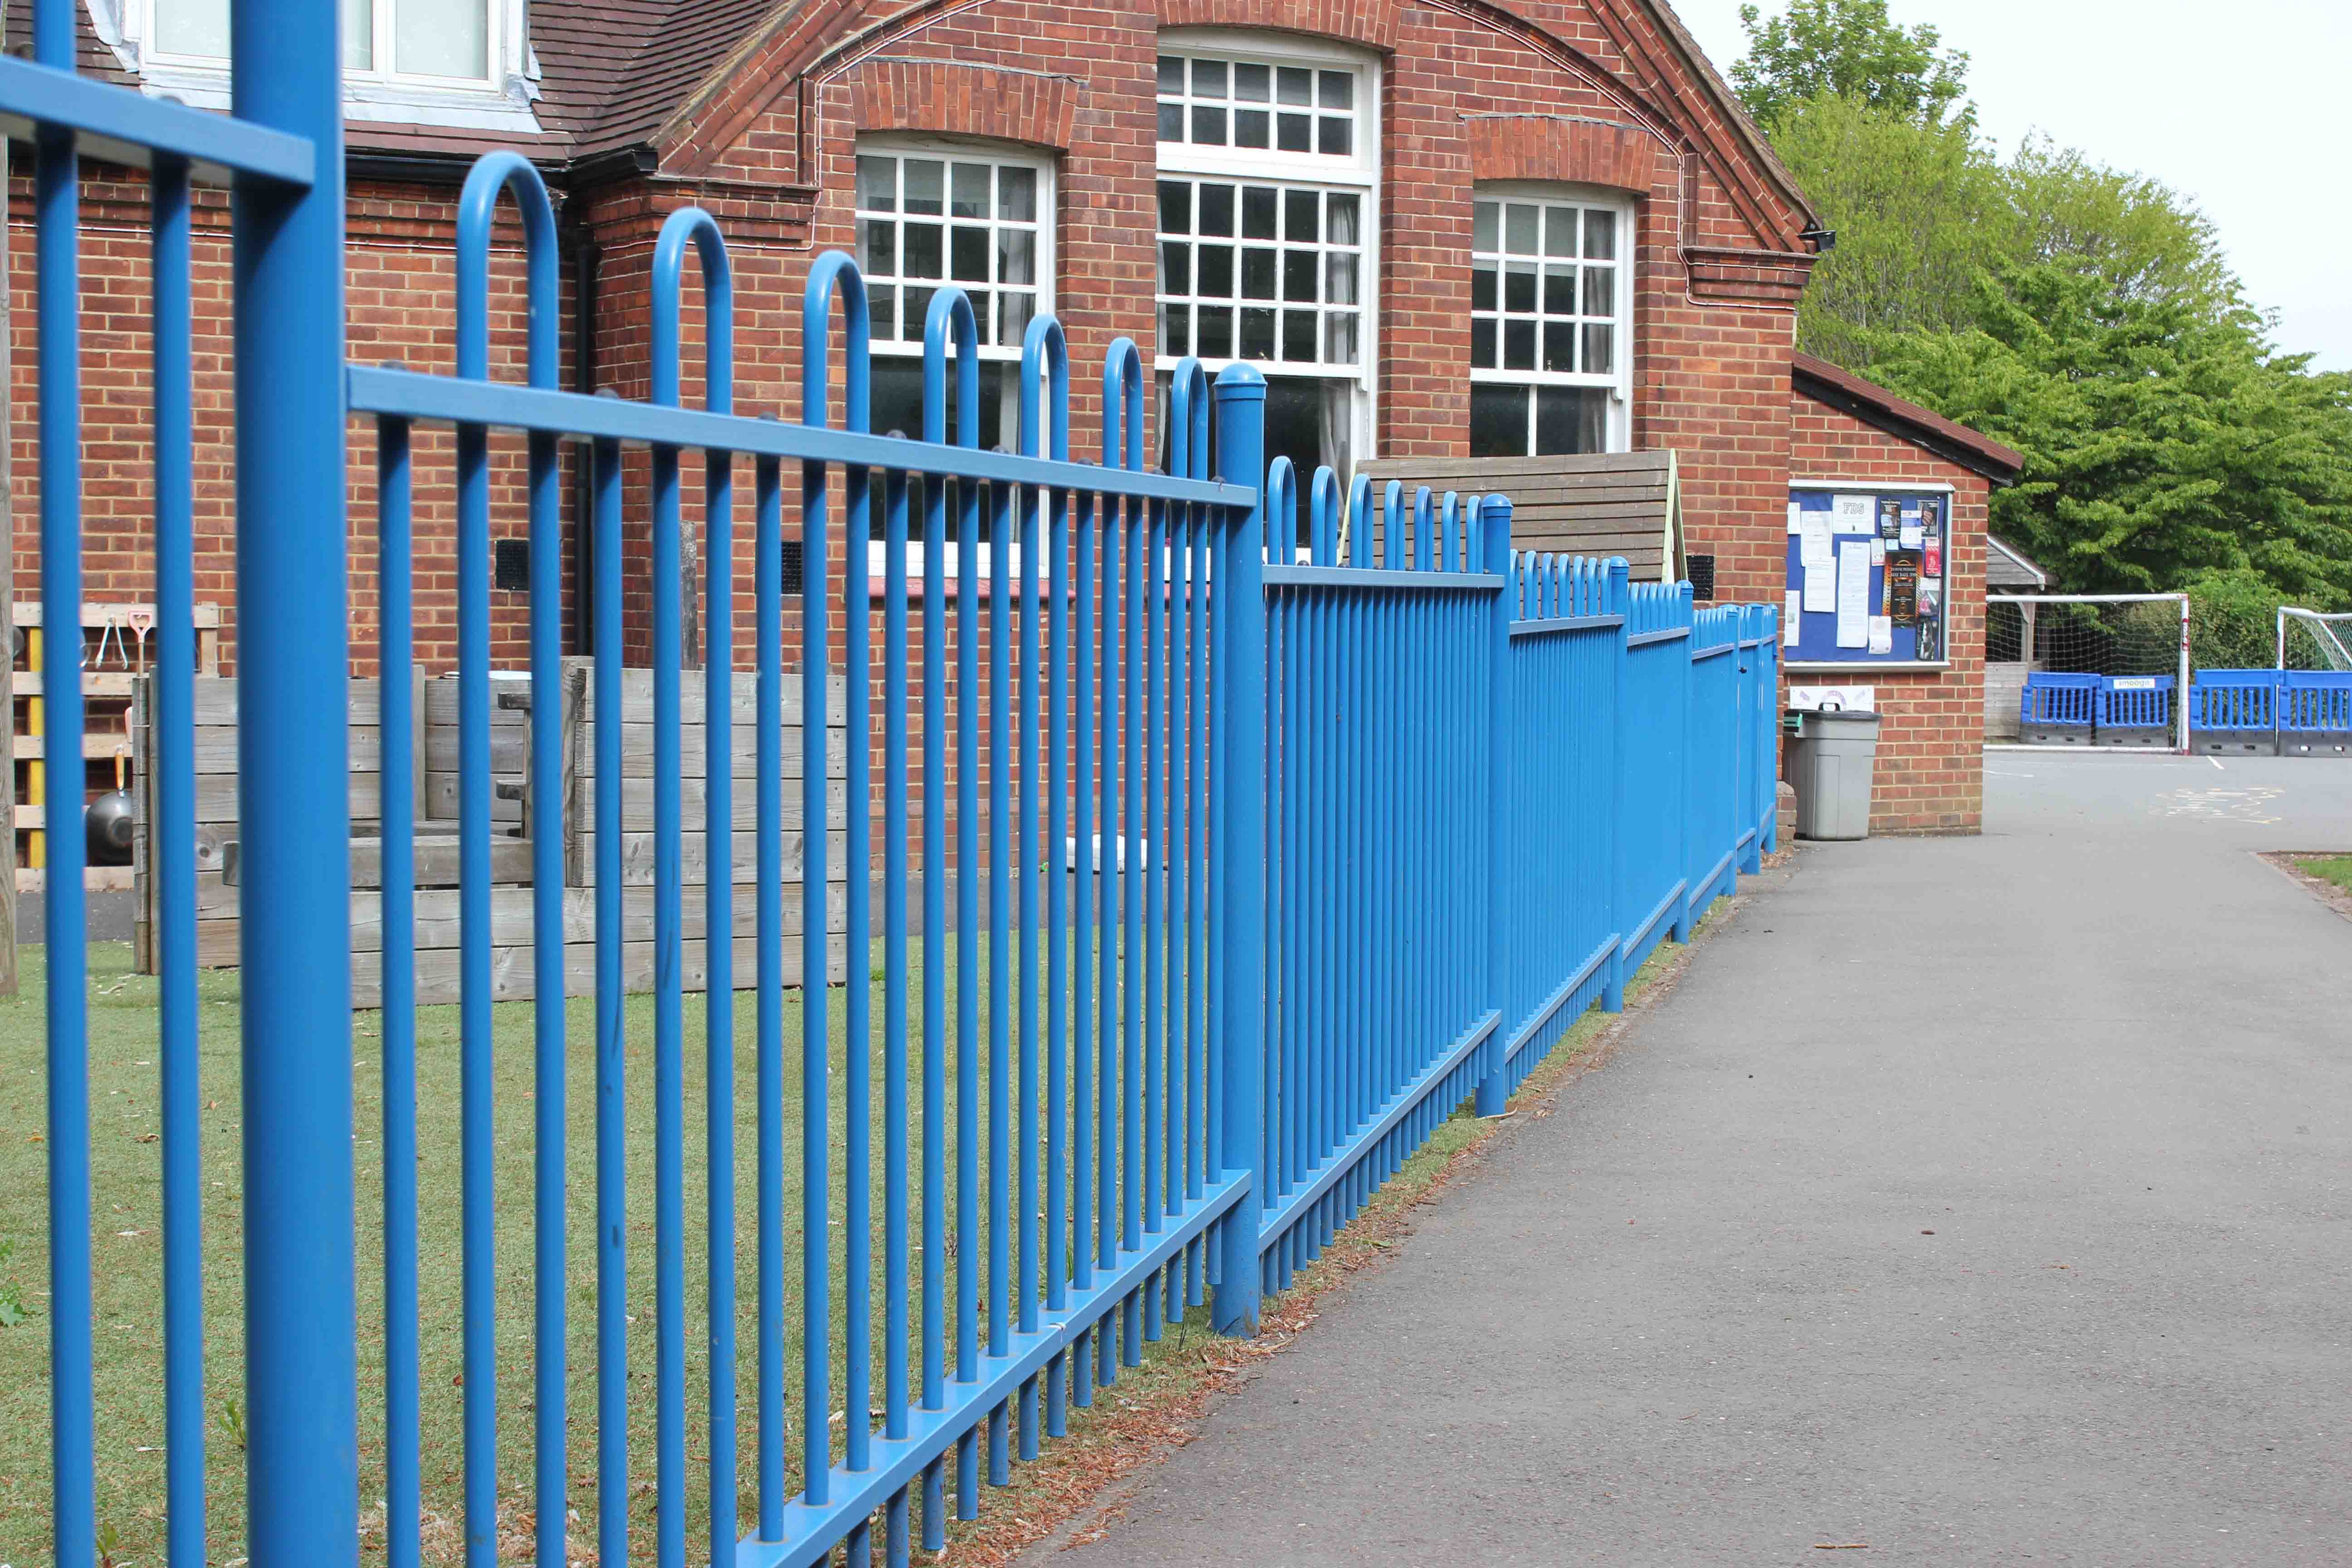 School fencing and gates